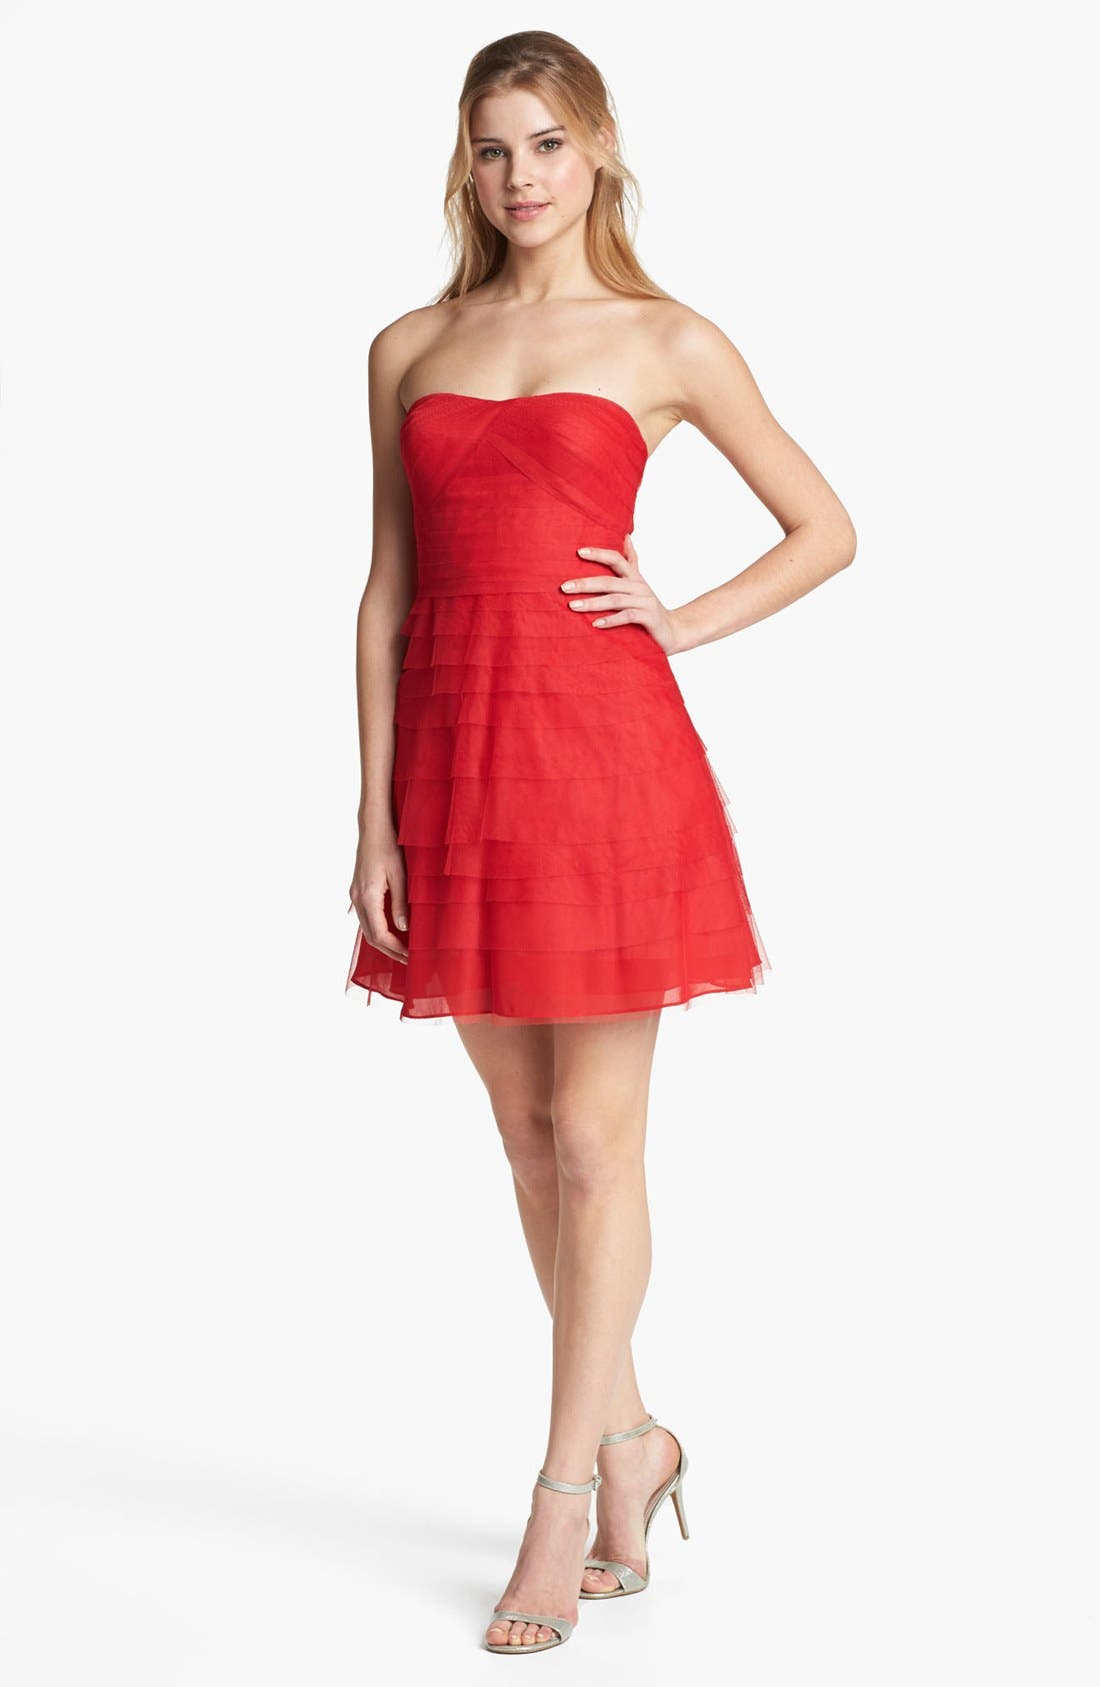 Alternate Image 1 Selected - Adrianna Papell Tiered Mesh Fit & Flare Dress